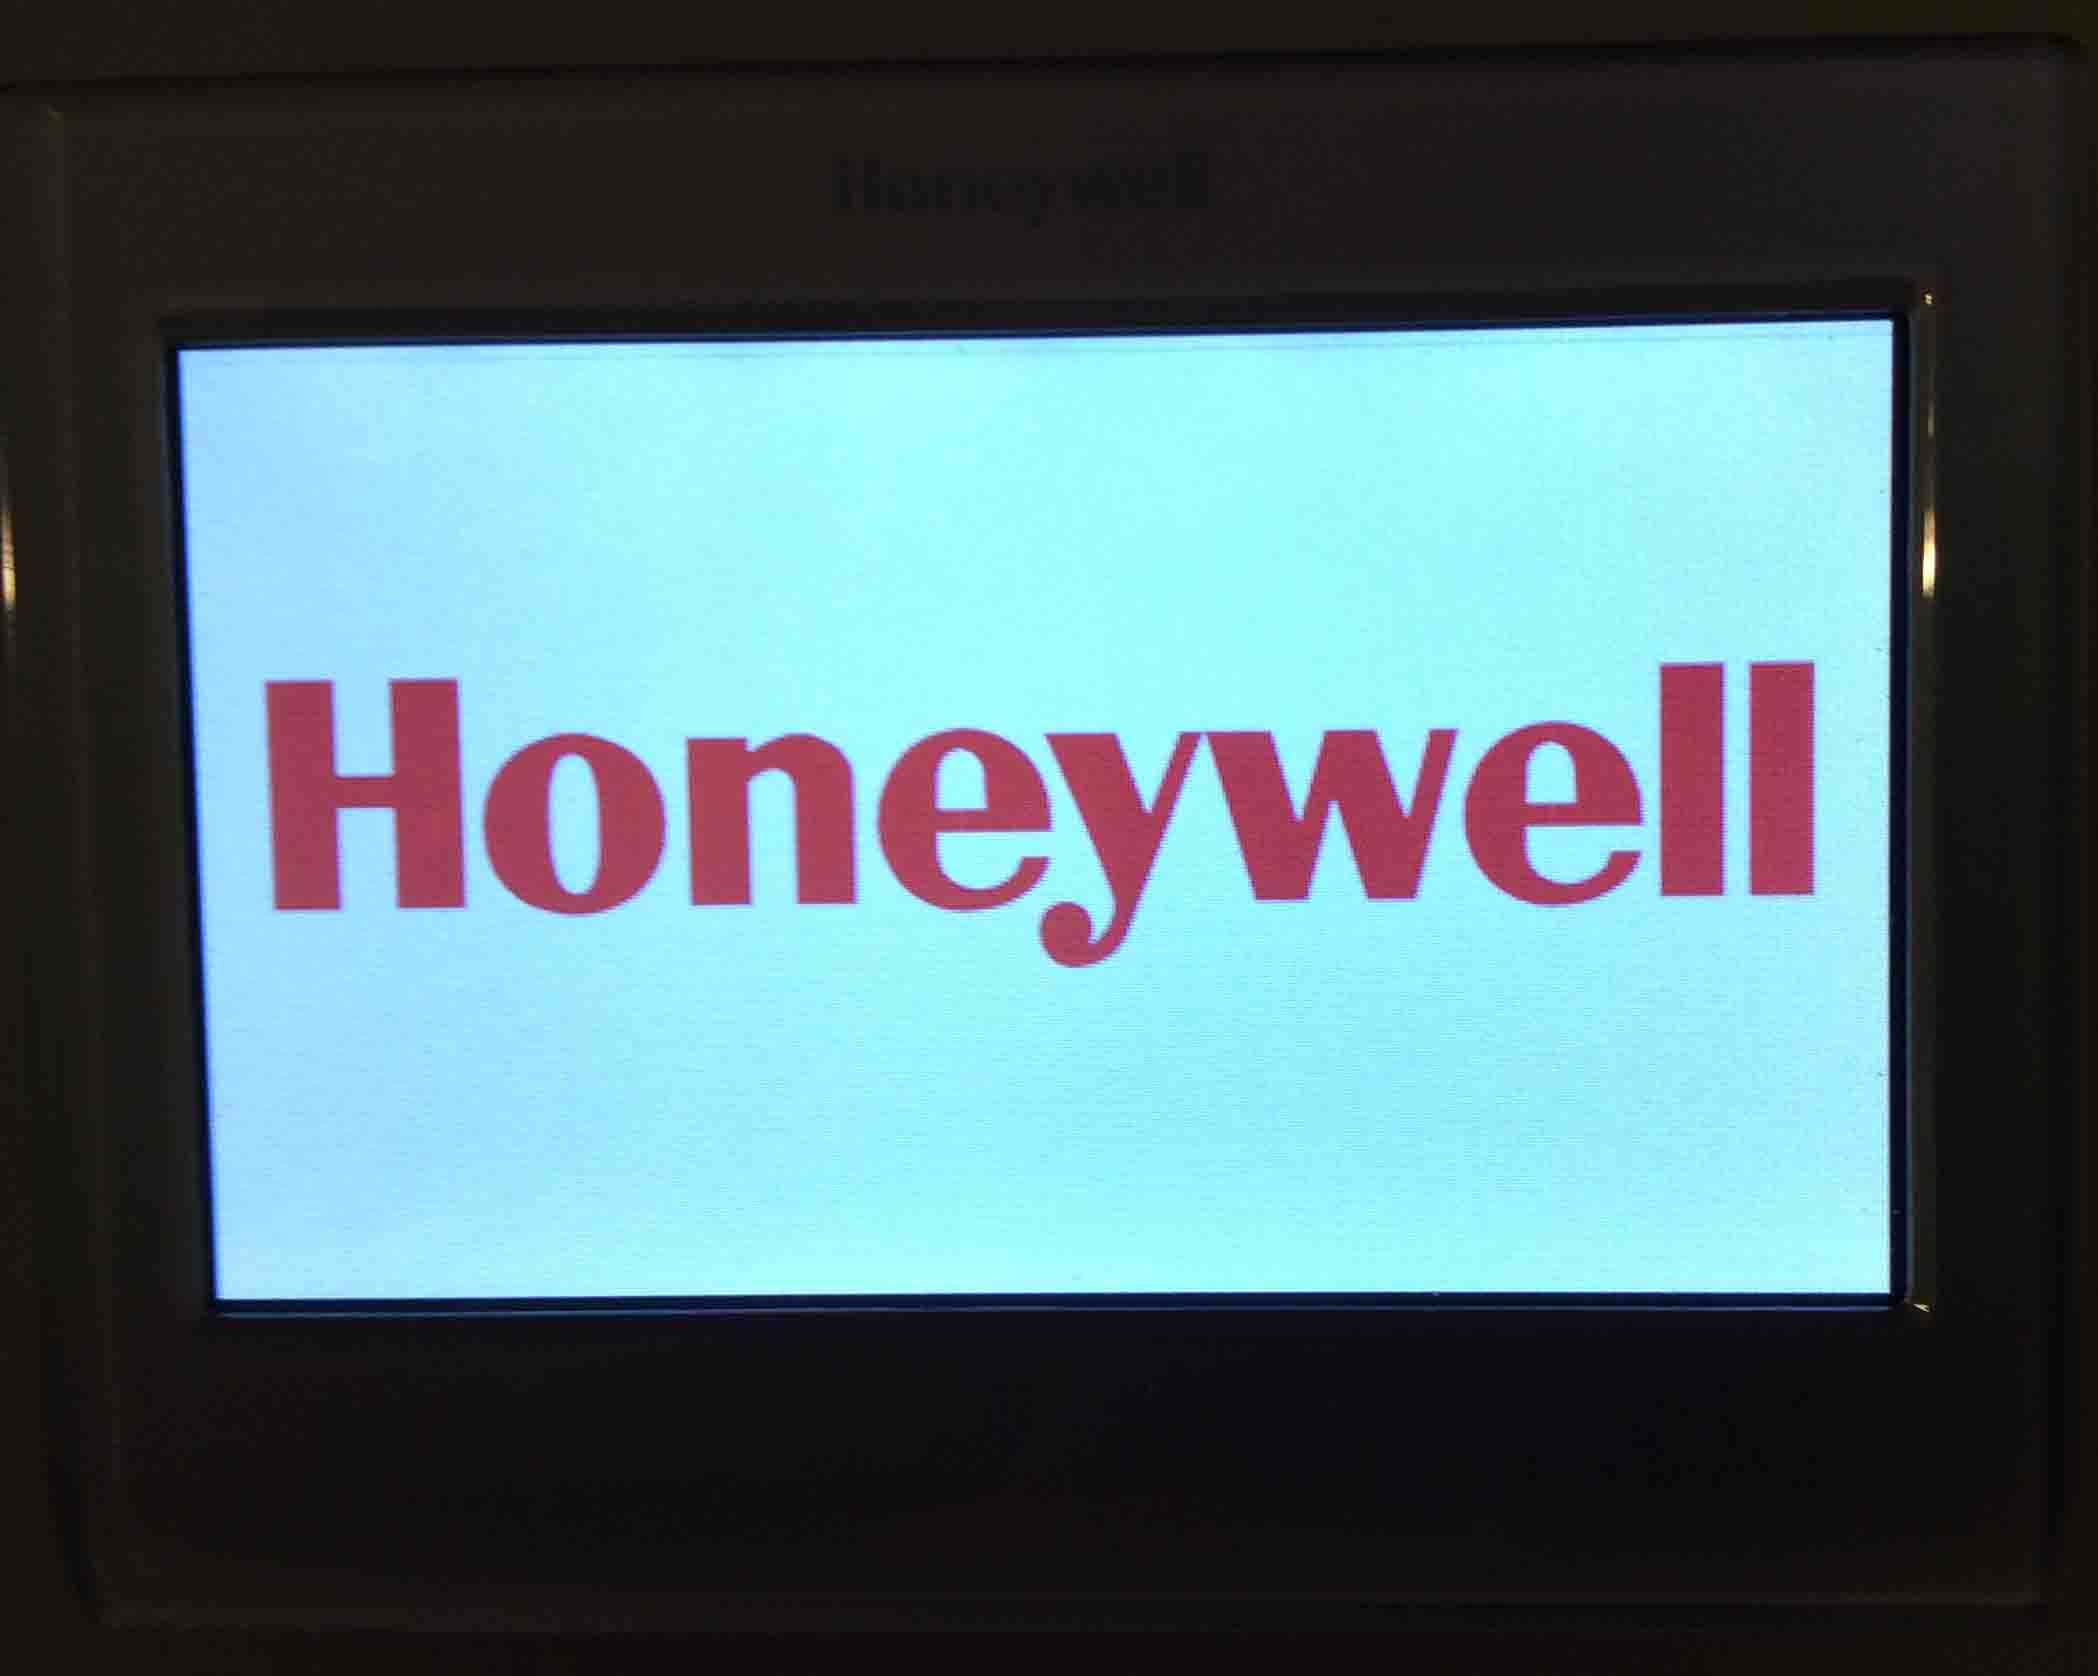 HoneywellRTH9580WFSmartThermostatBootScreen_001?resize=825%2C510&ssl=1 honeywell smart thermostat wiring instructions rth9580wf tom's wiring diagram for honeywell rth6580wf at reclaimingppi.co